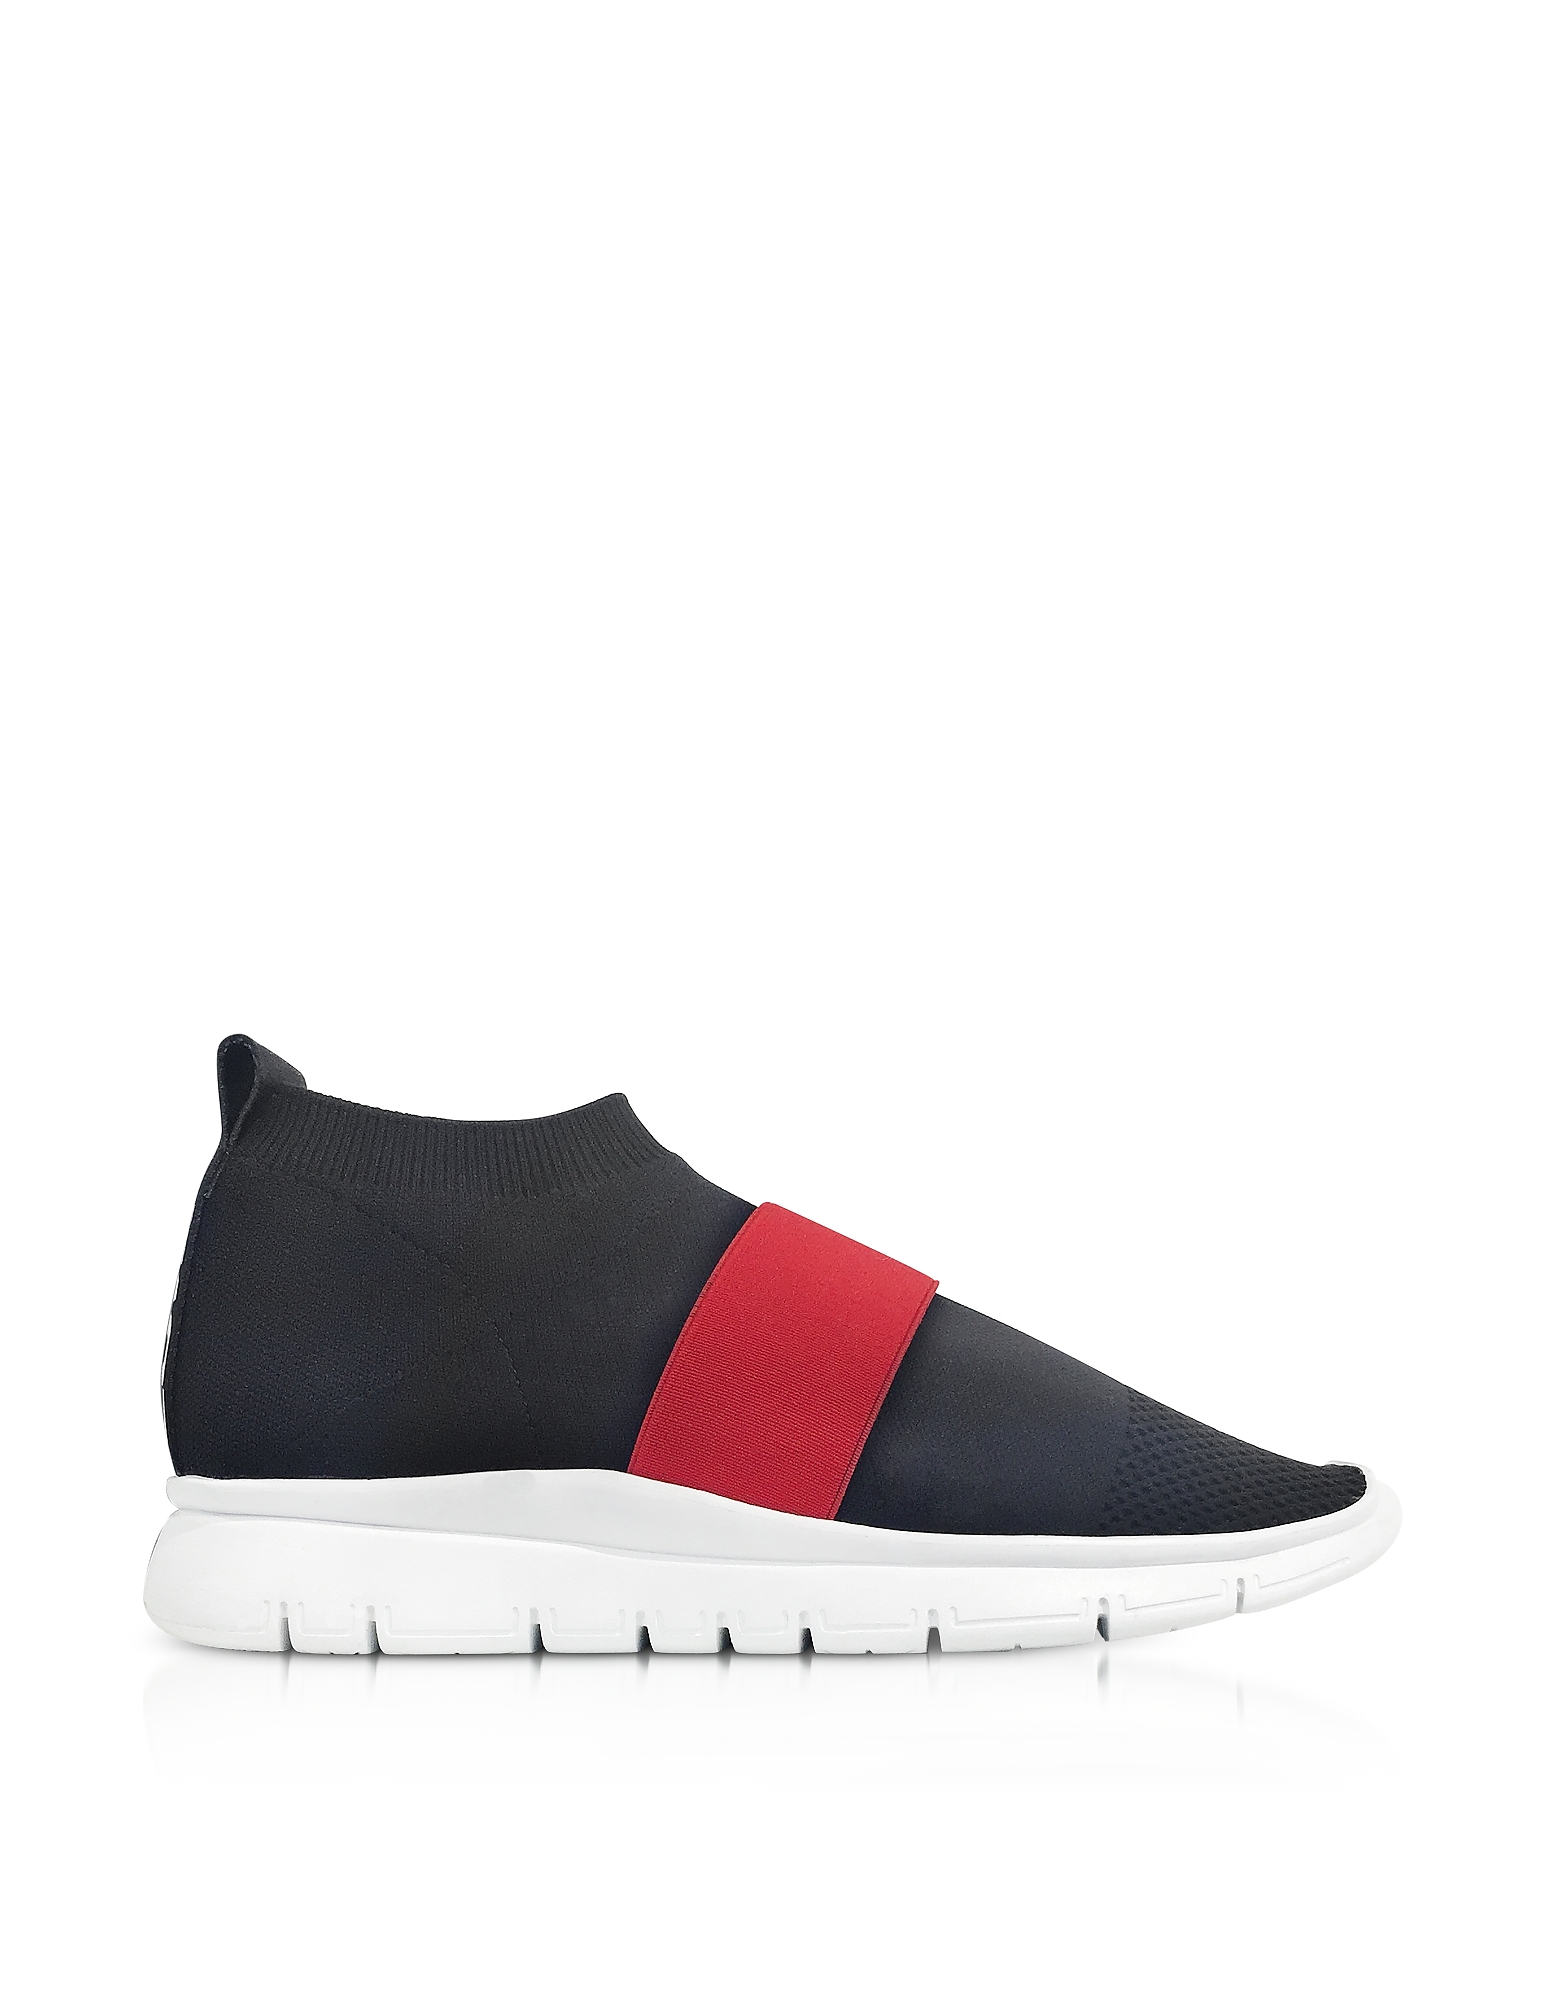 Joshua Sanders Shoes, Black Go High Nylon Sock Sneakers